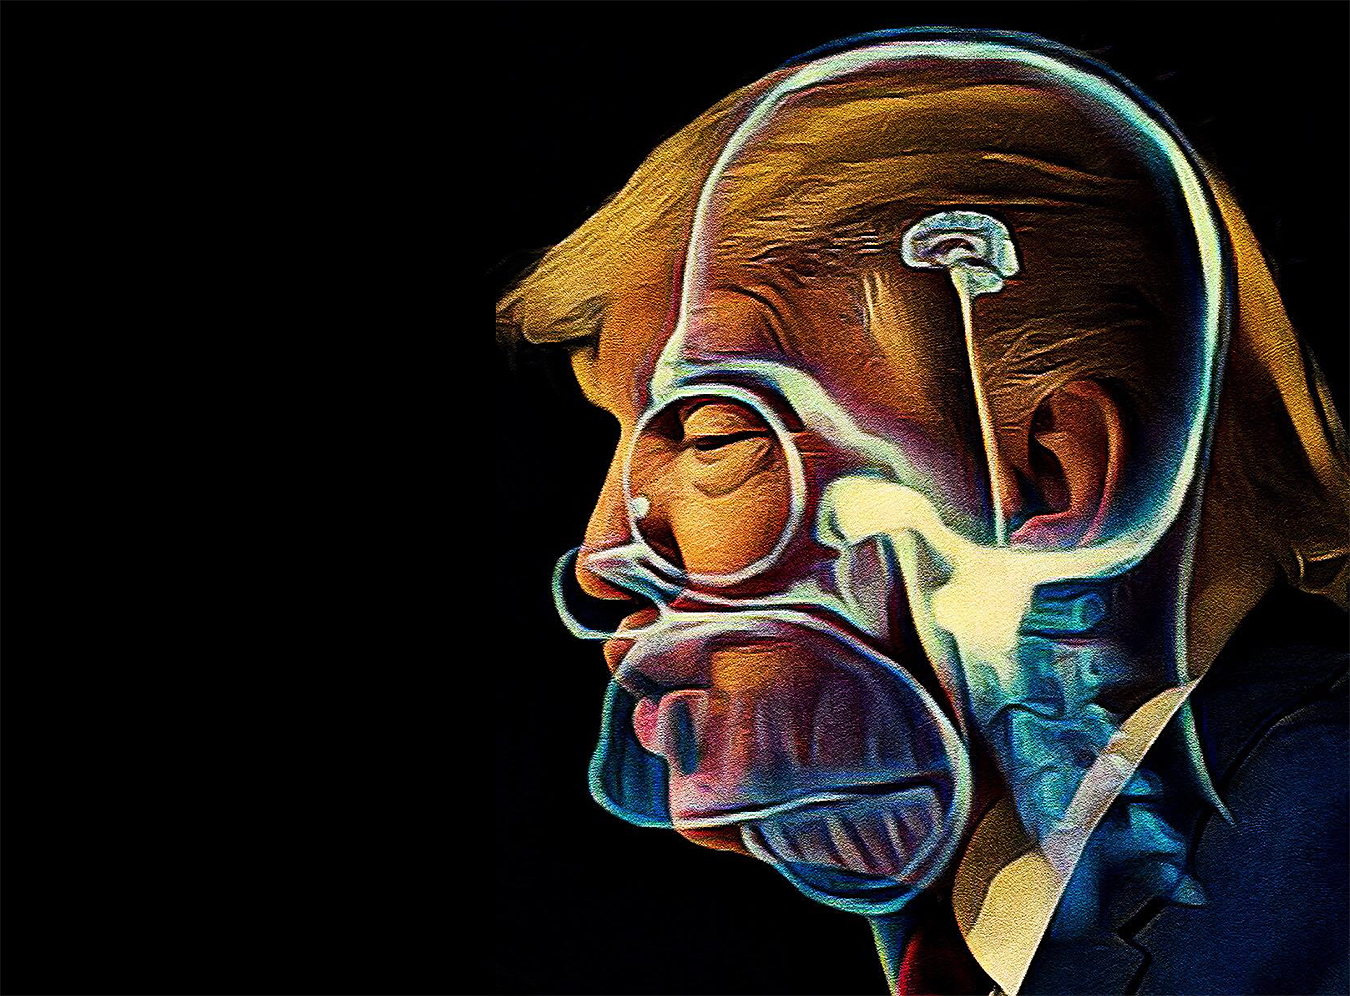 Artwork_Eustace_Pilgram_Trump_bad_President_brain_vortex_illustration_cool_art_politics